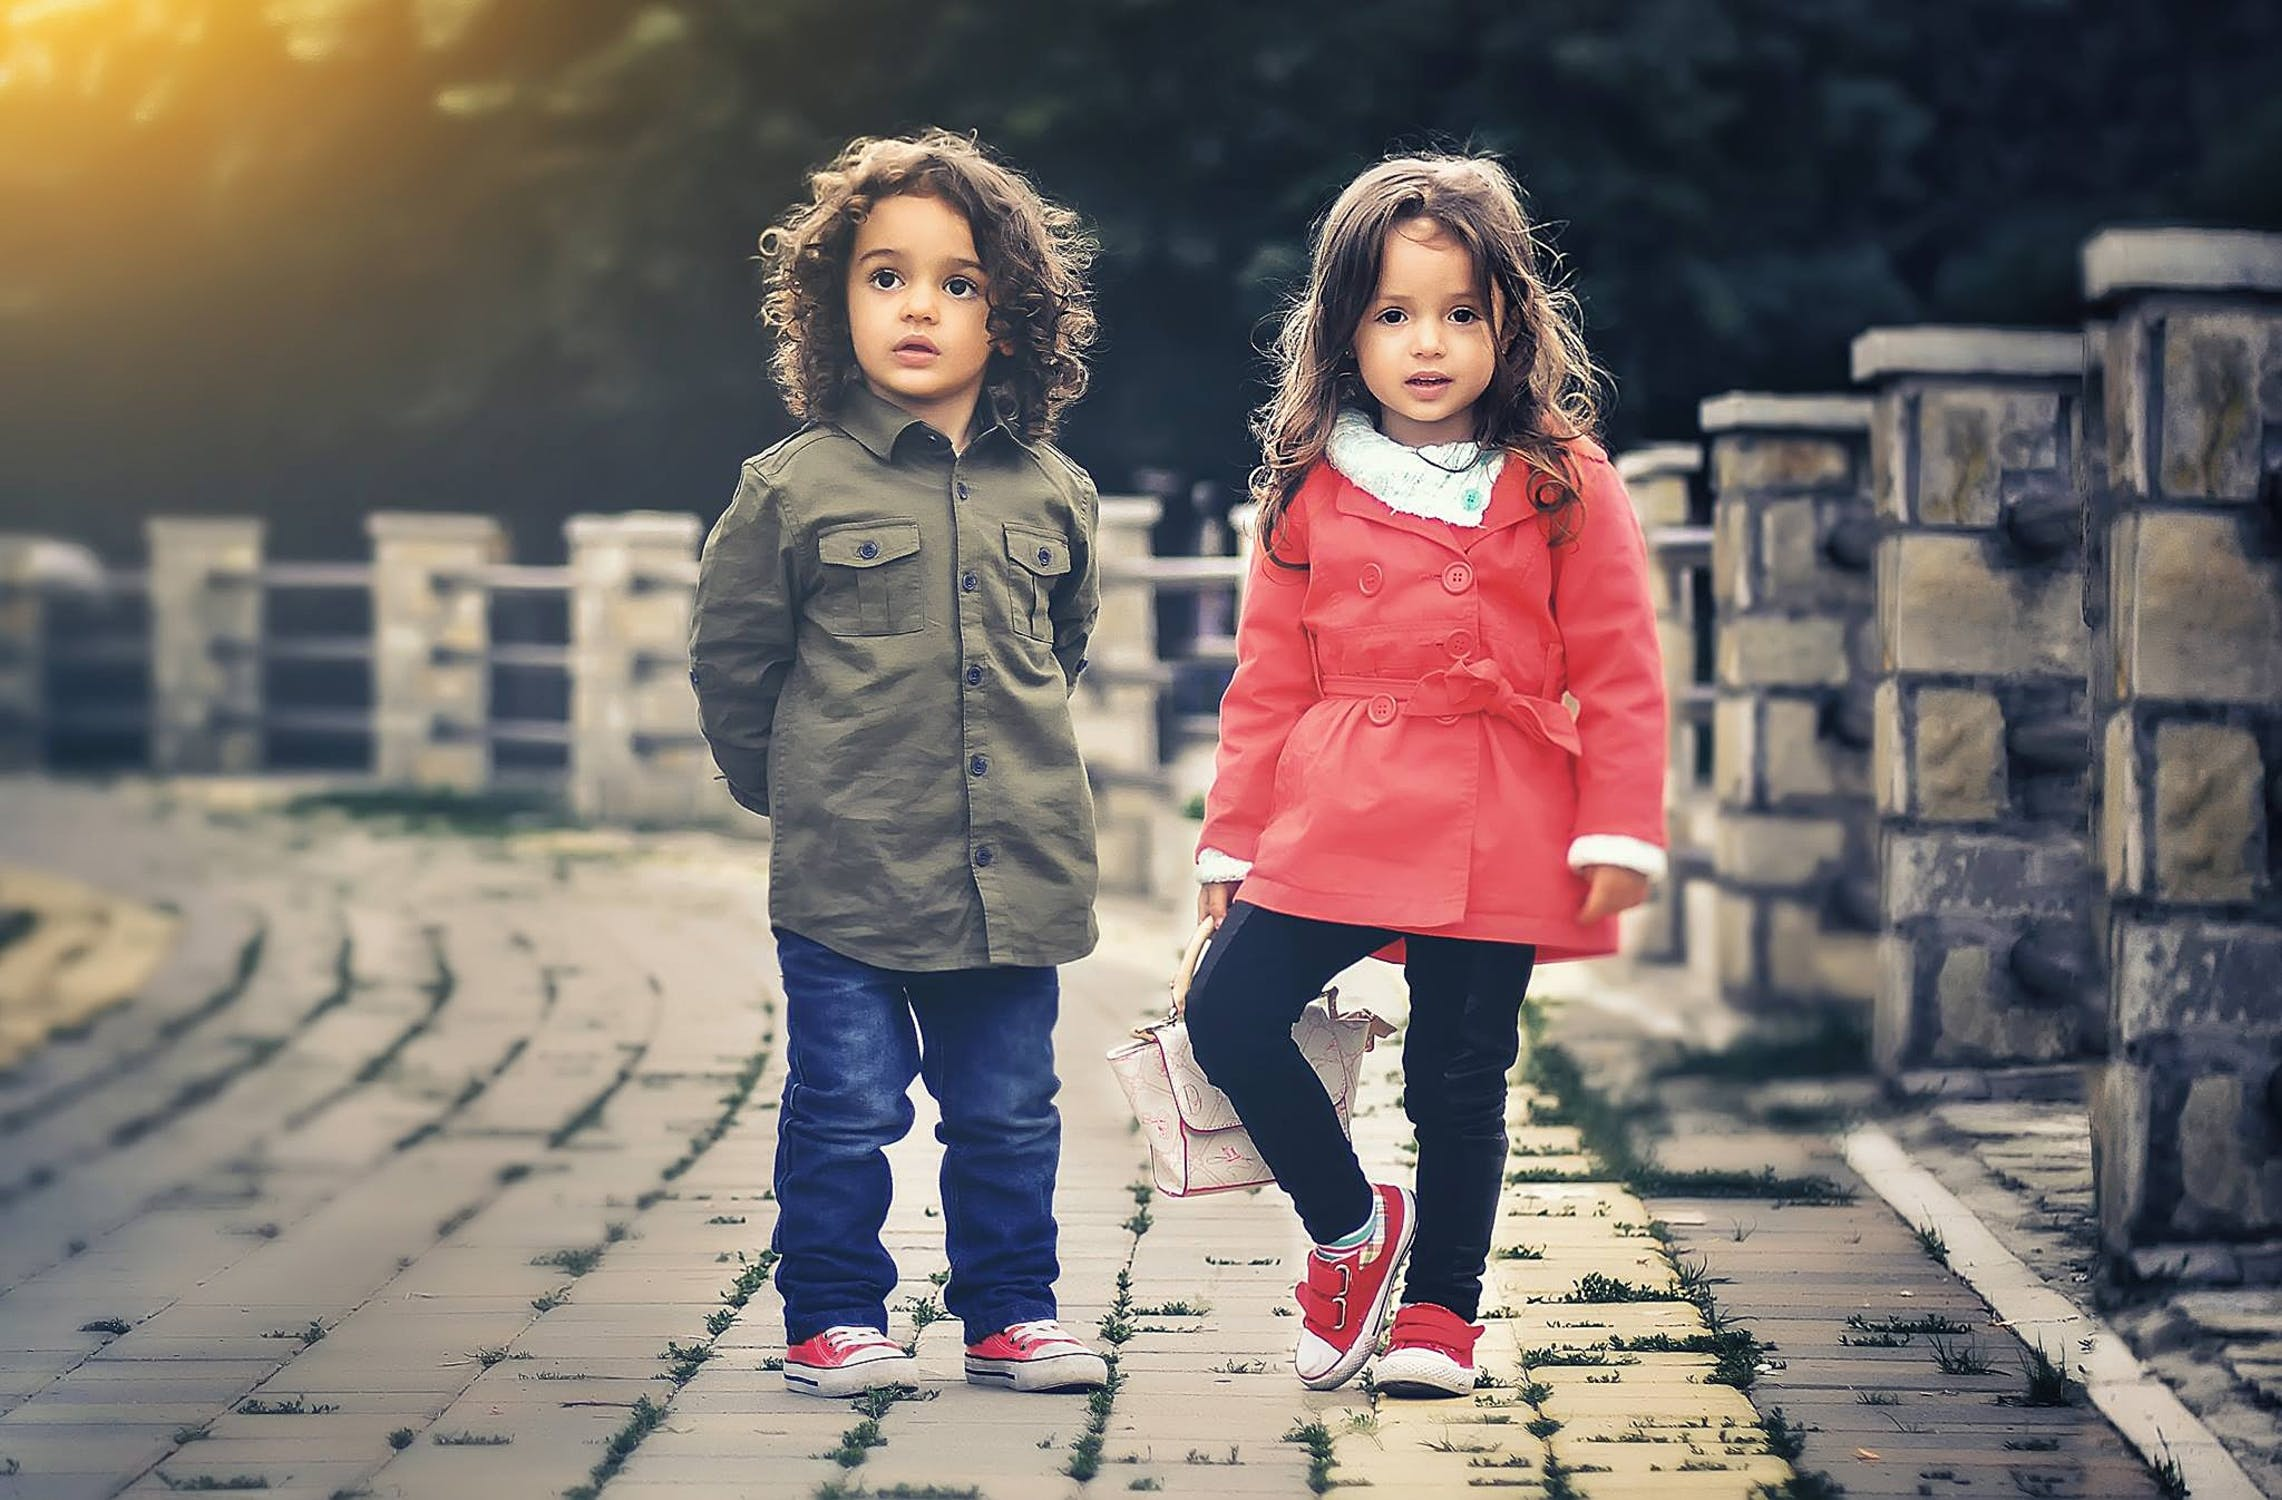 How to make kids taller: 7 tips to ease the worry